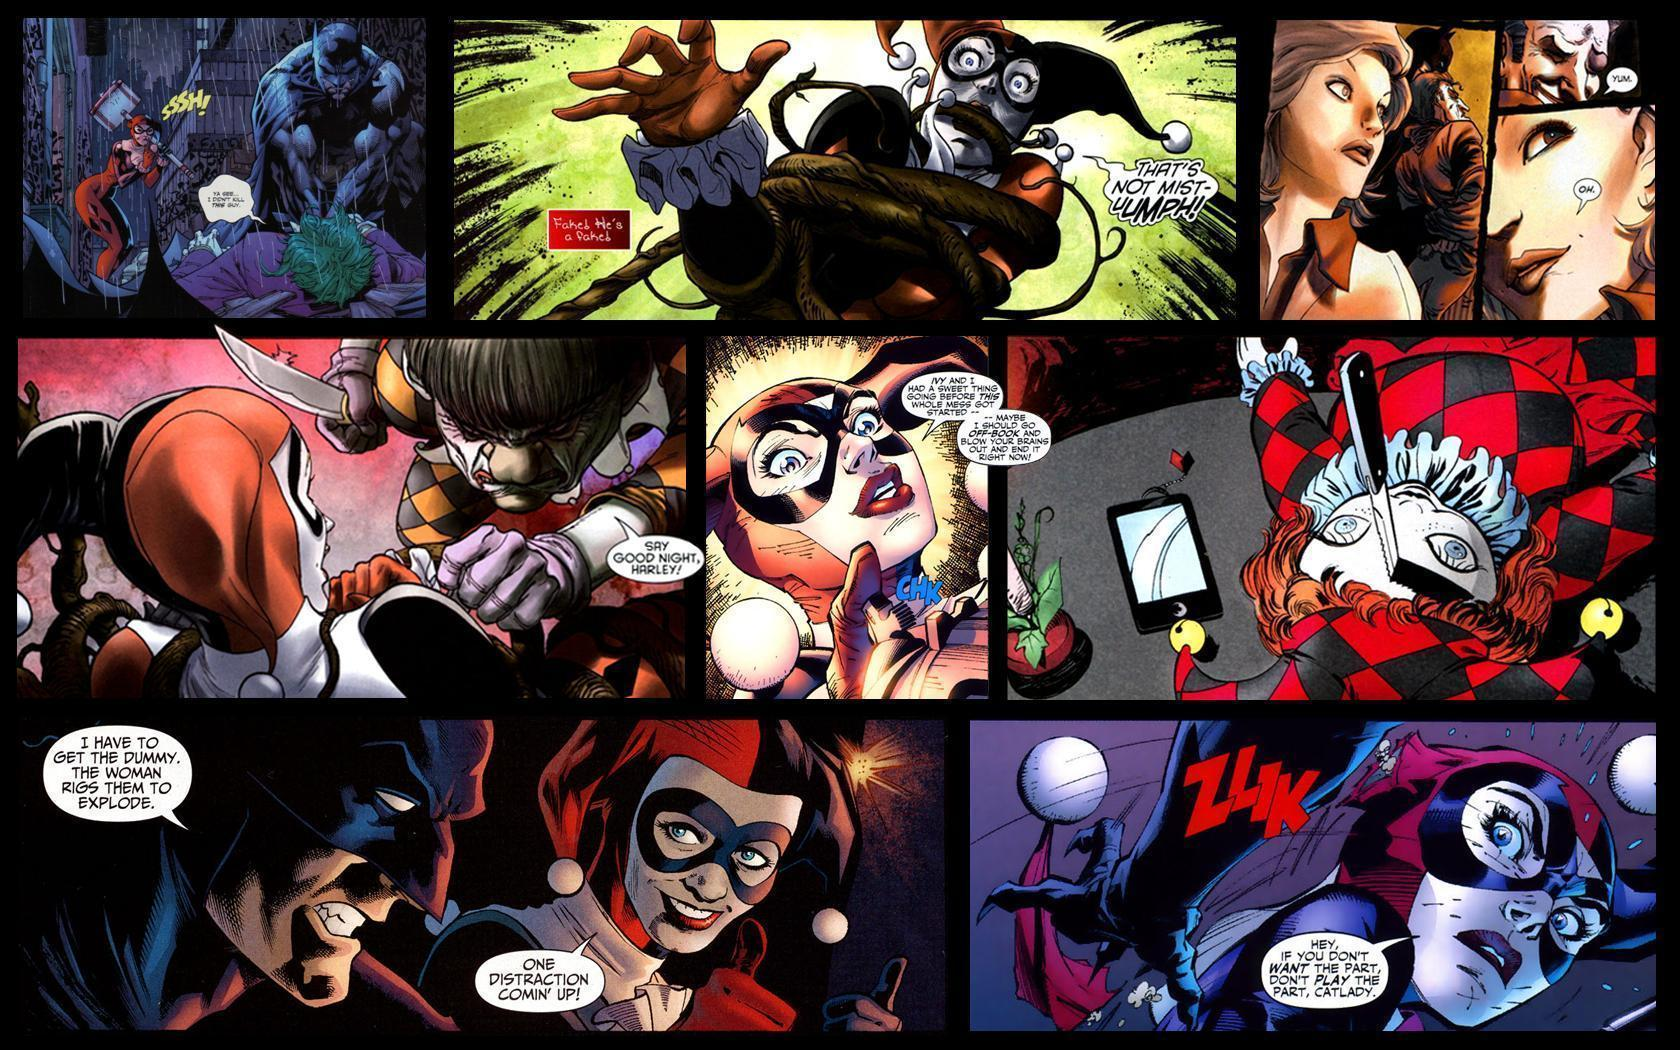 Harley Quinn Wallpaper Images & Pictures - Becuo